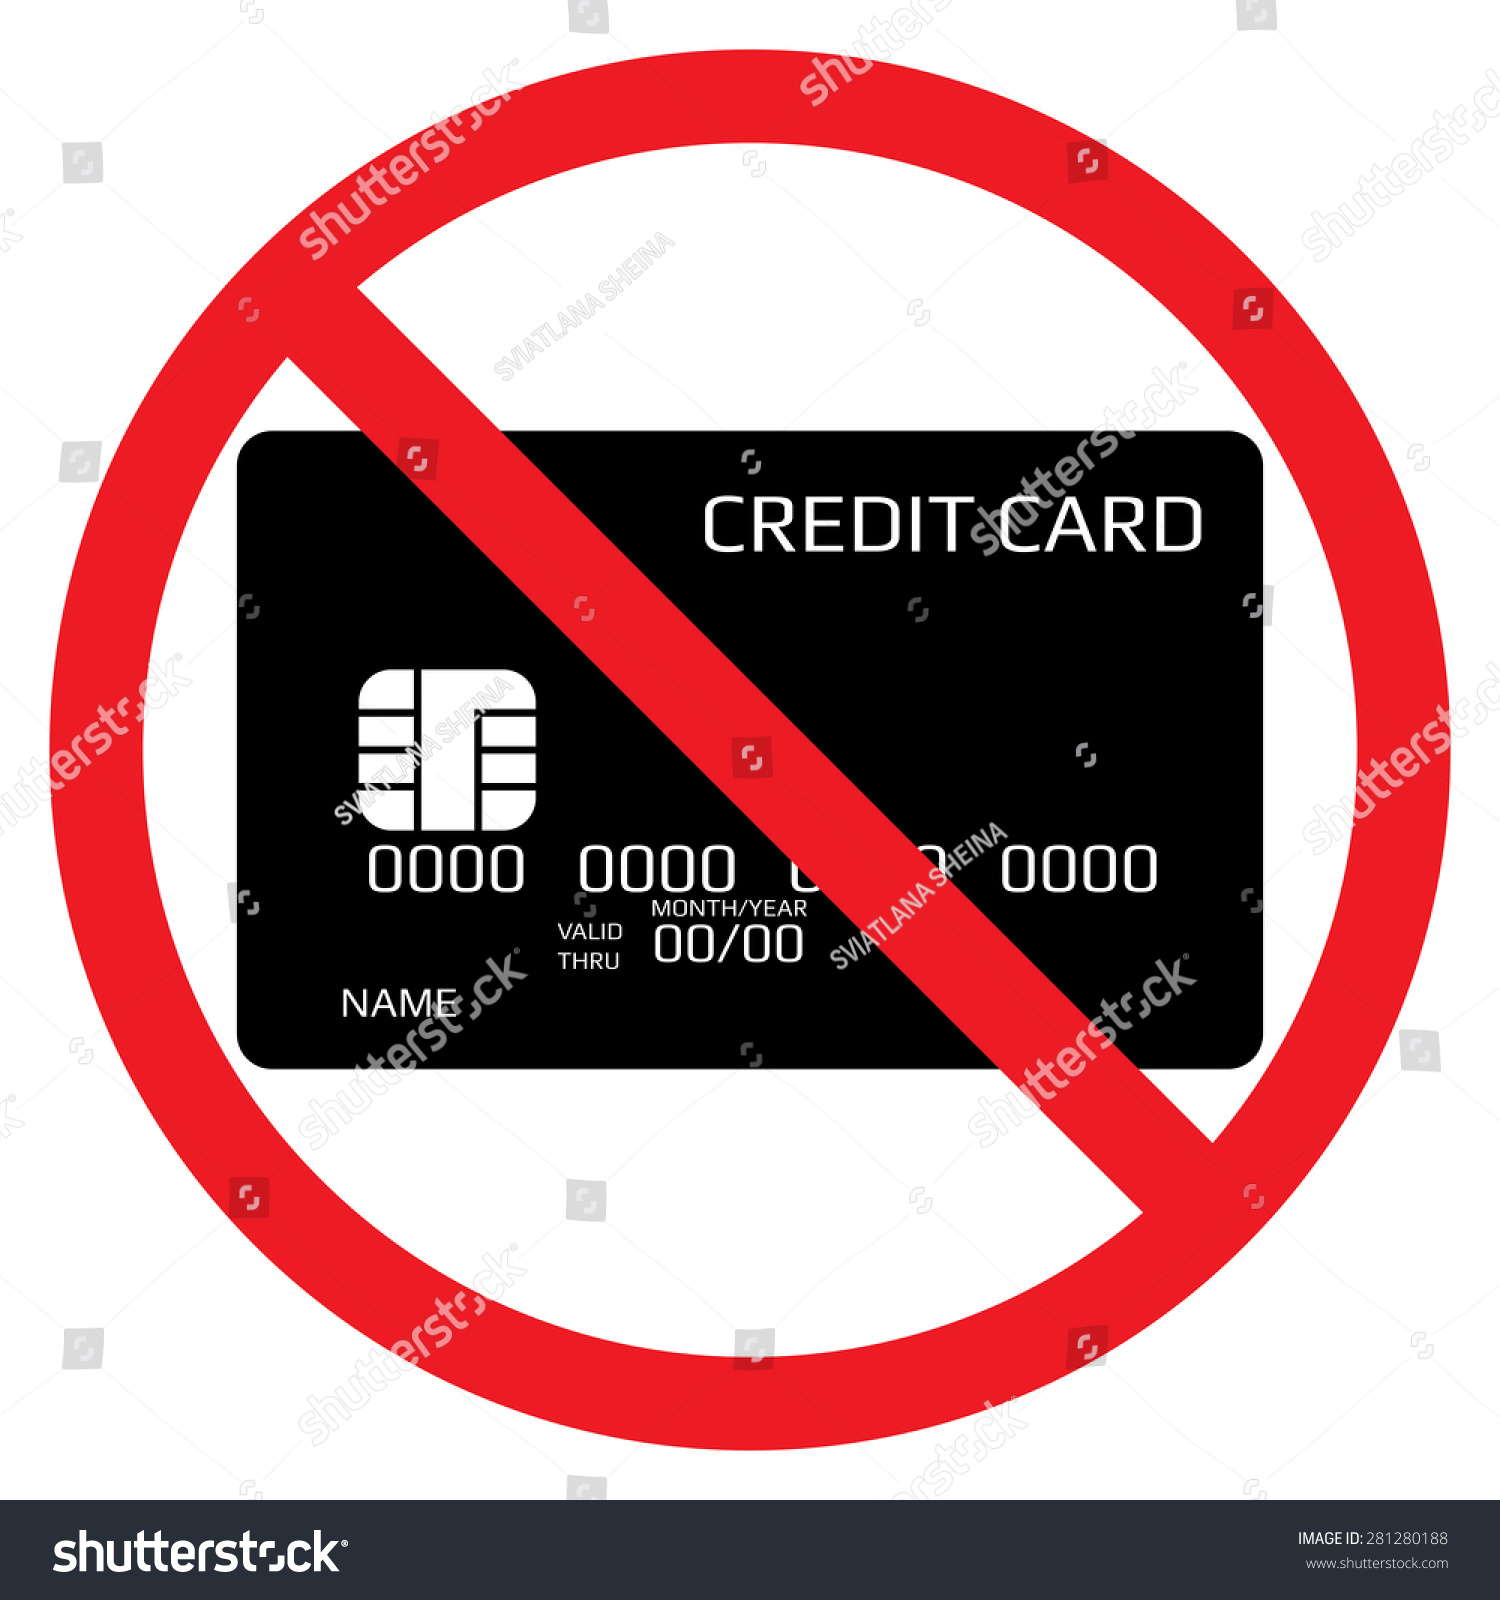 No Credit Card Cash Red Prohibition Stock Vector 281280188